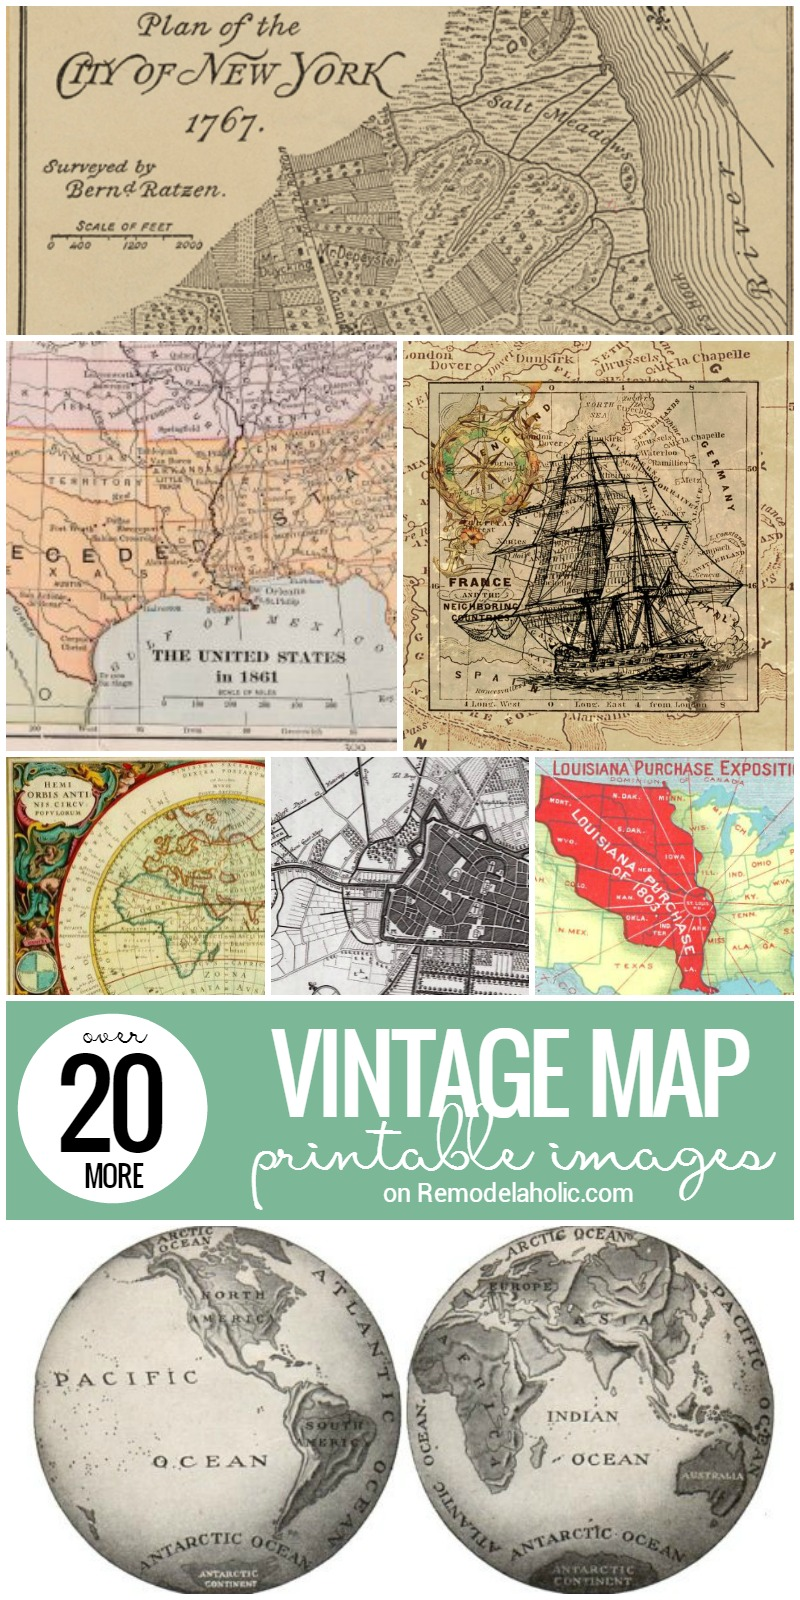 Remodelaholic 20 more free printable vintage map images in addition to the 20 vintage map printable images we collected before now we gumiabroncs Gallery